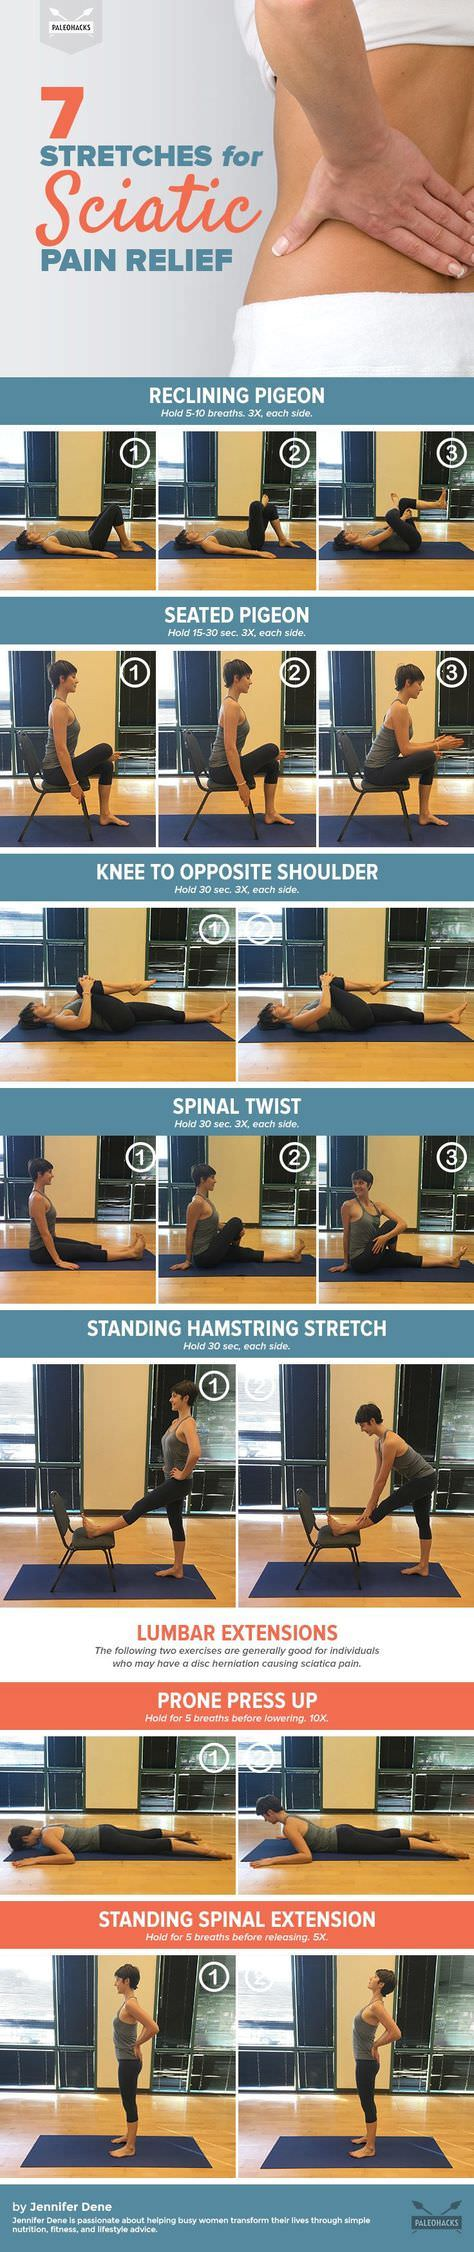 The following Seven stretches can ease tension in the piriformis muscle and are best suited to relieve piriformis-induced sciatic pain.